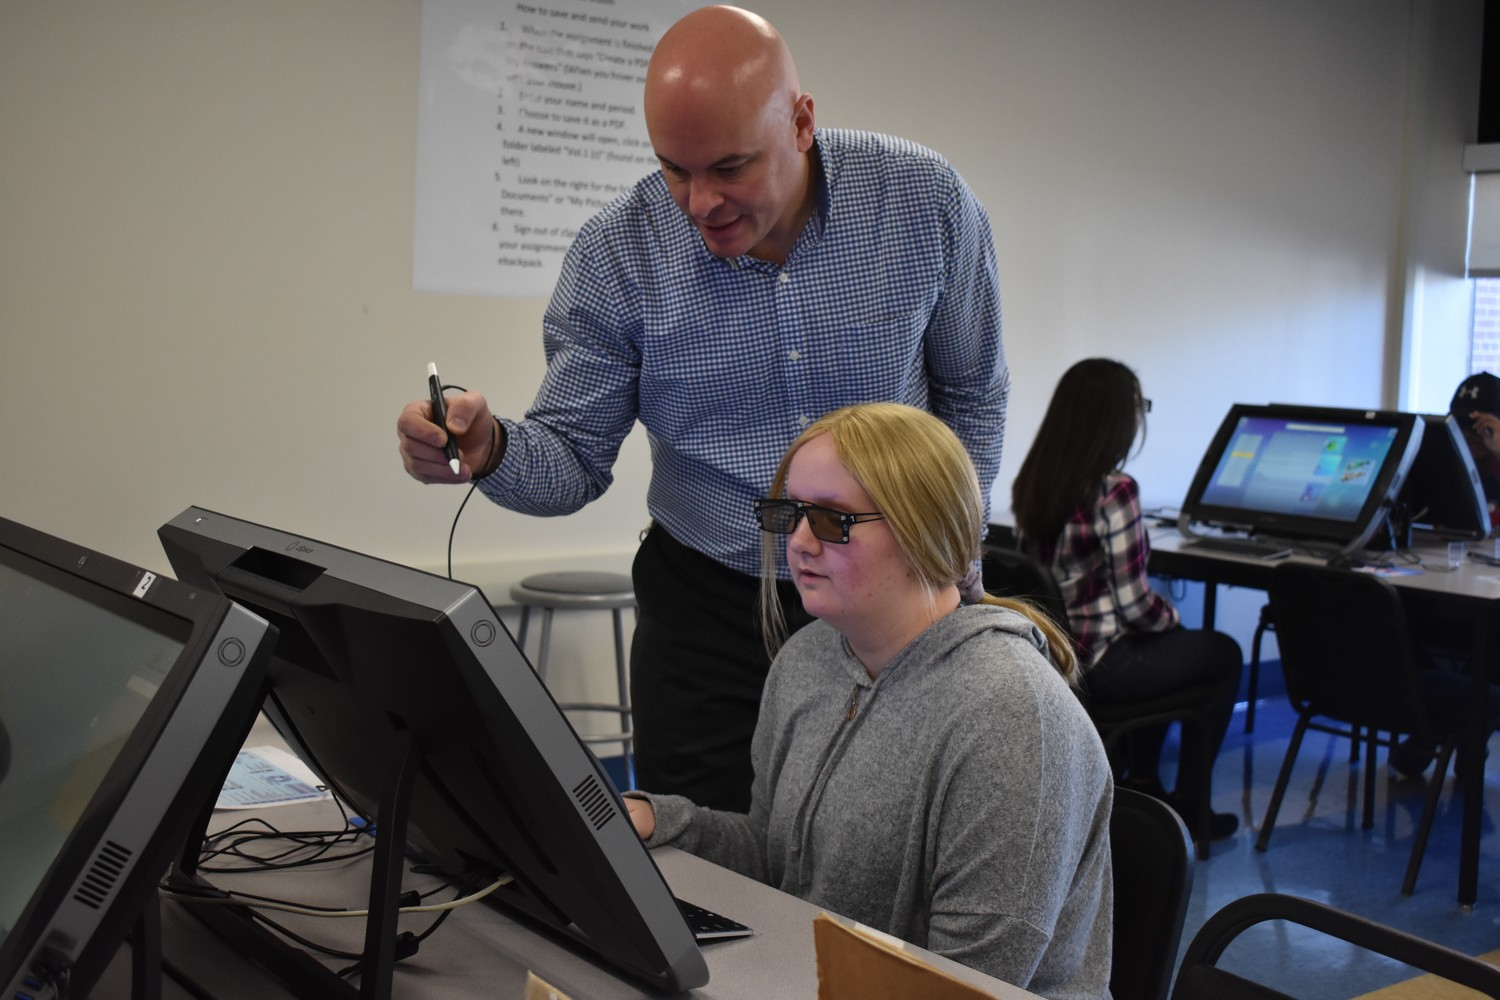 Chris D'Ambrosio, a science teacher at South Side High School, helped student Emma Garrett use one of the district's zSpace computers to analyze and label parts of the human body's circulatory, respiratory and digestive systems.